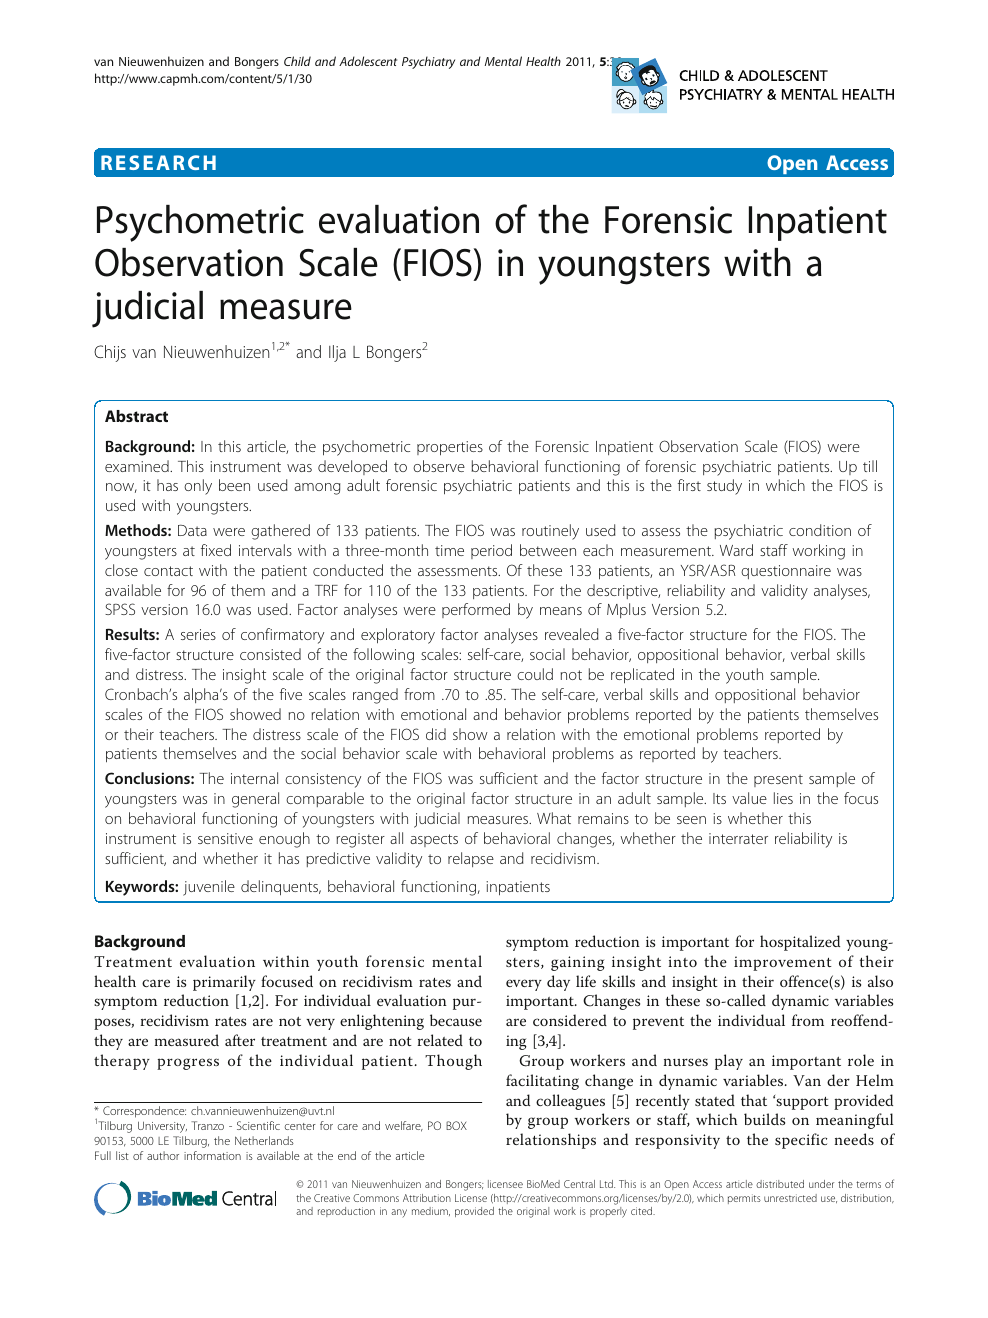 Psychometric Evaluation Of The Forensic Inpatient Observation Scale Fios In Youngsters With A Judicial Measure Topic Of Research Paper In Psychology Download Scholarly Article Pdf And Read For Free On Cyberleninka